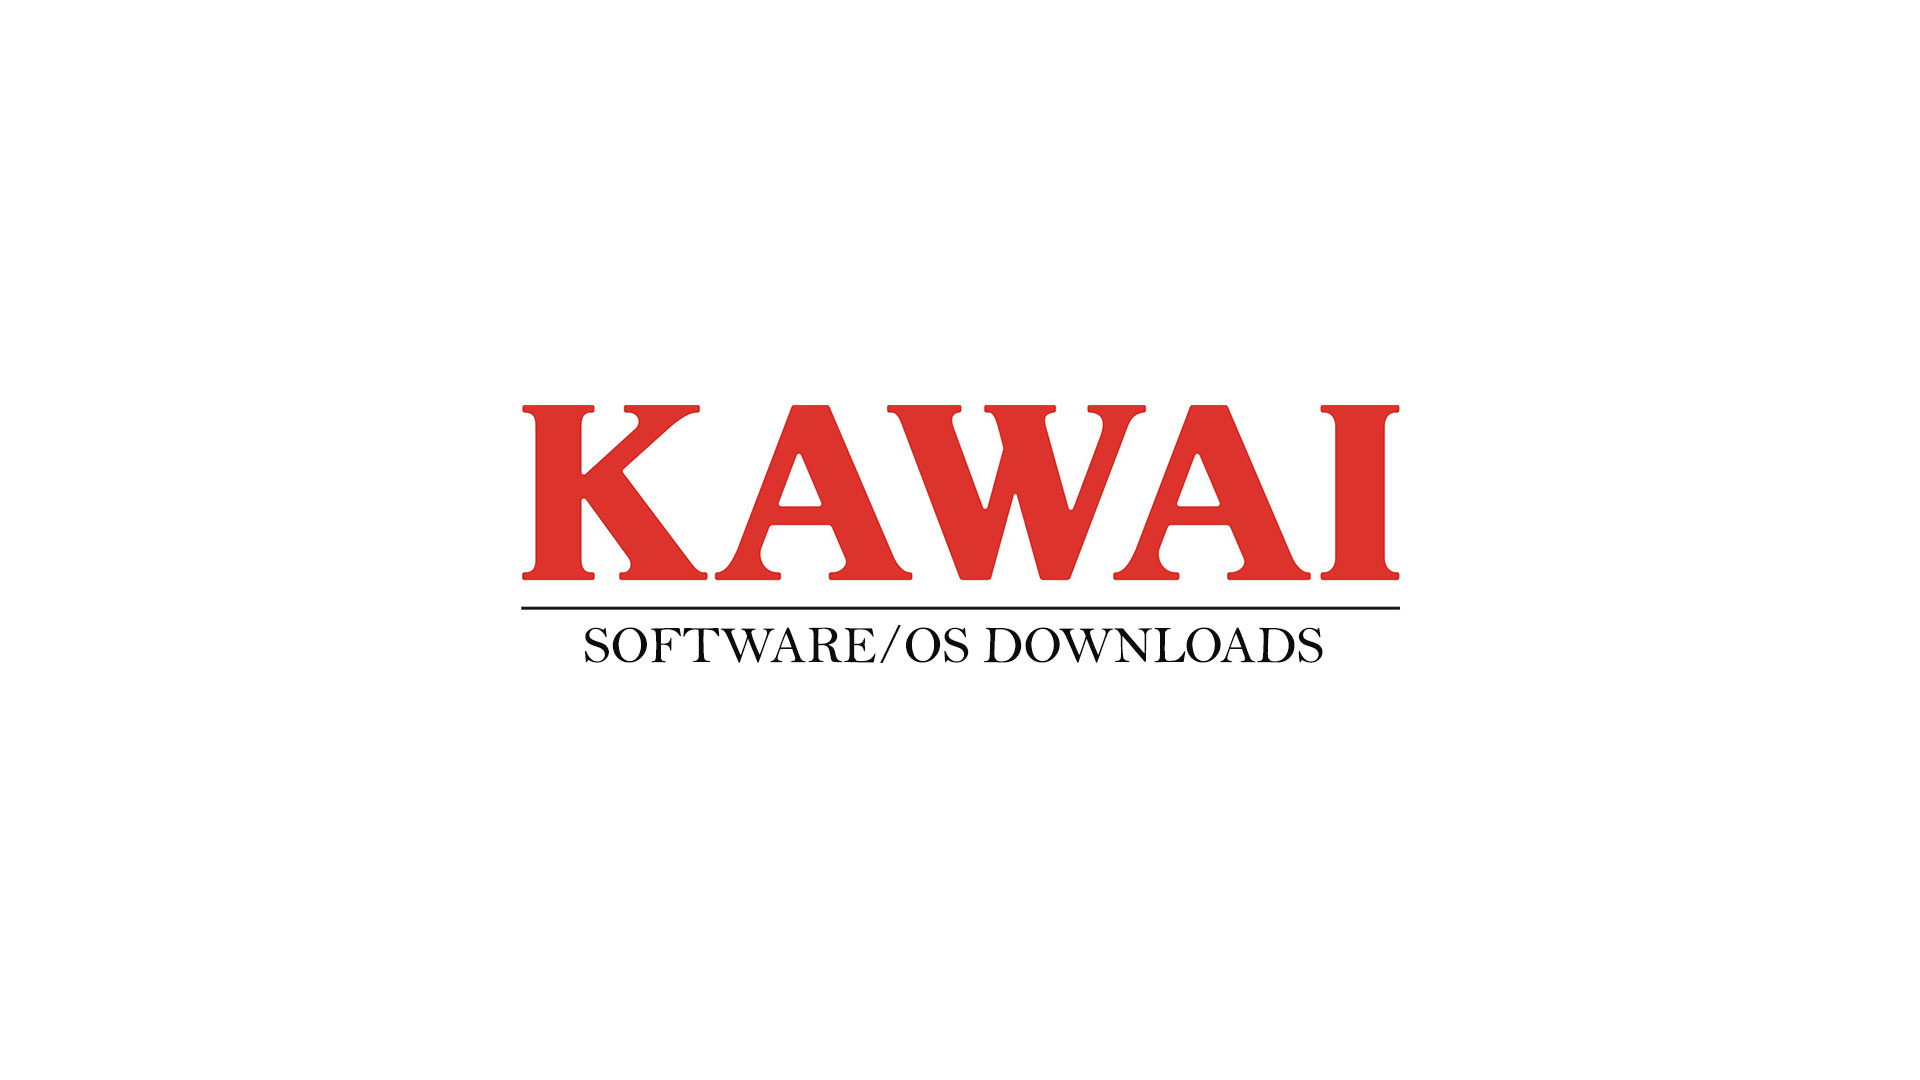 Kawai Software OS Downloads